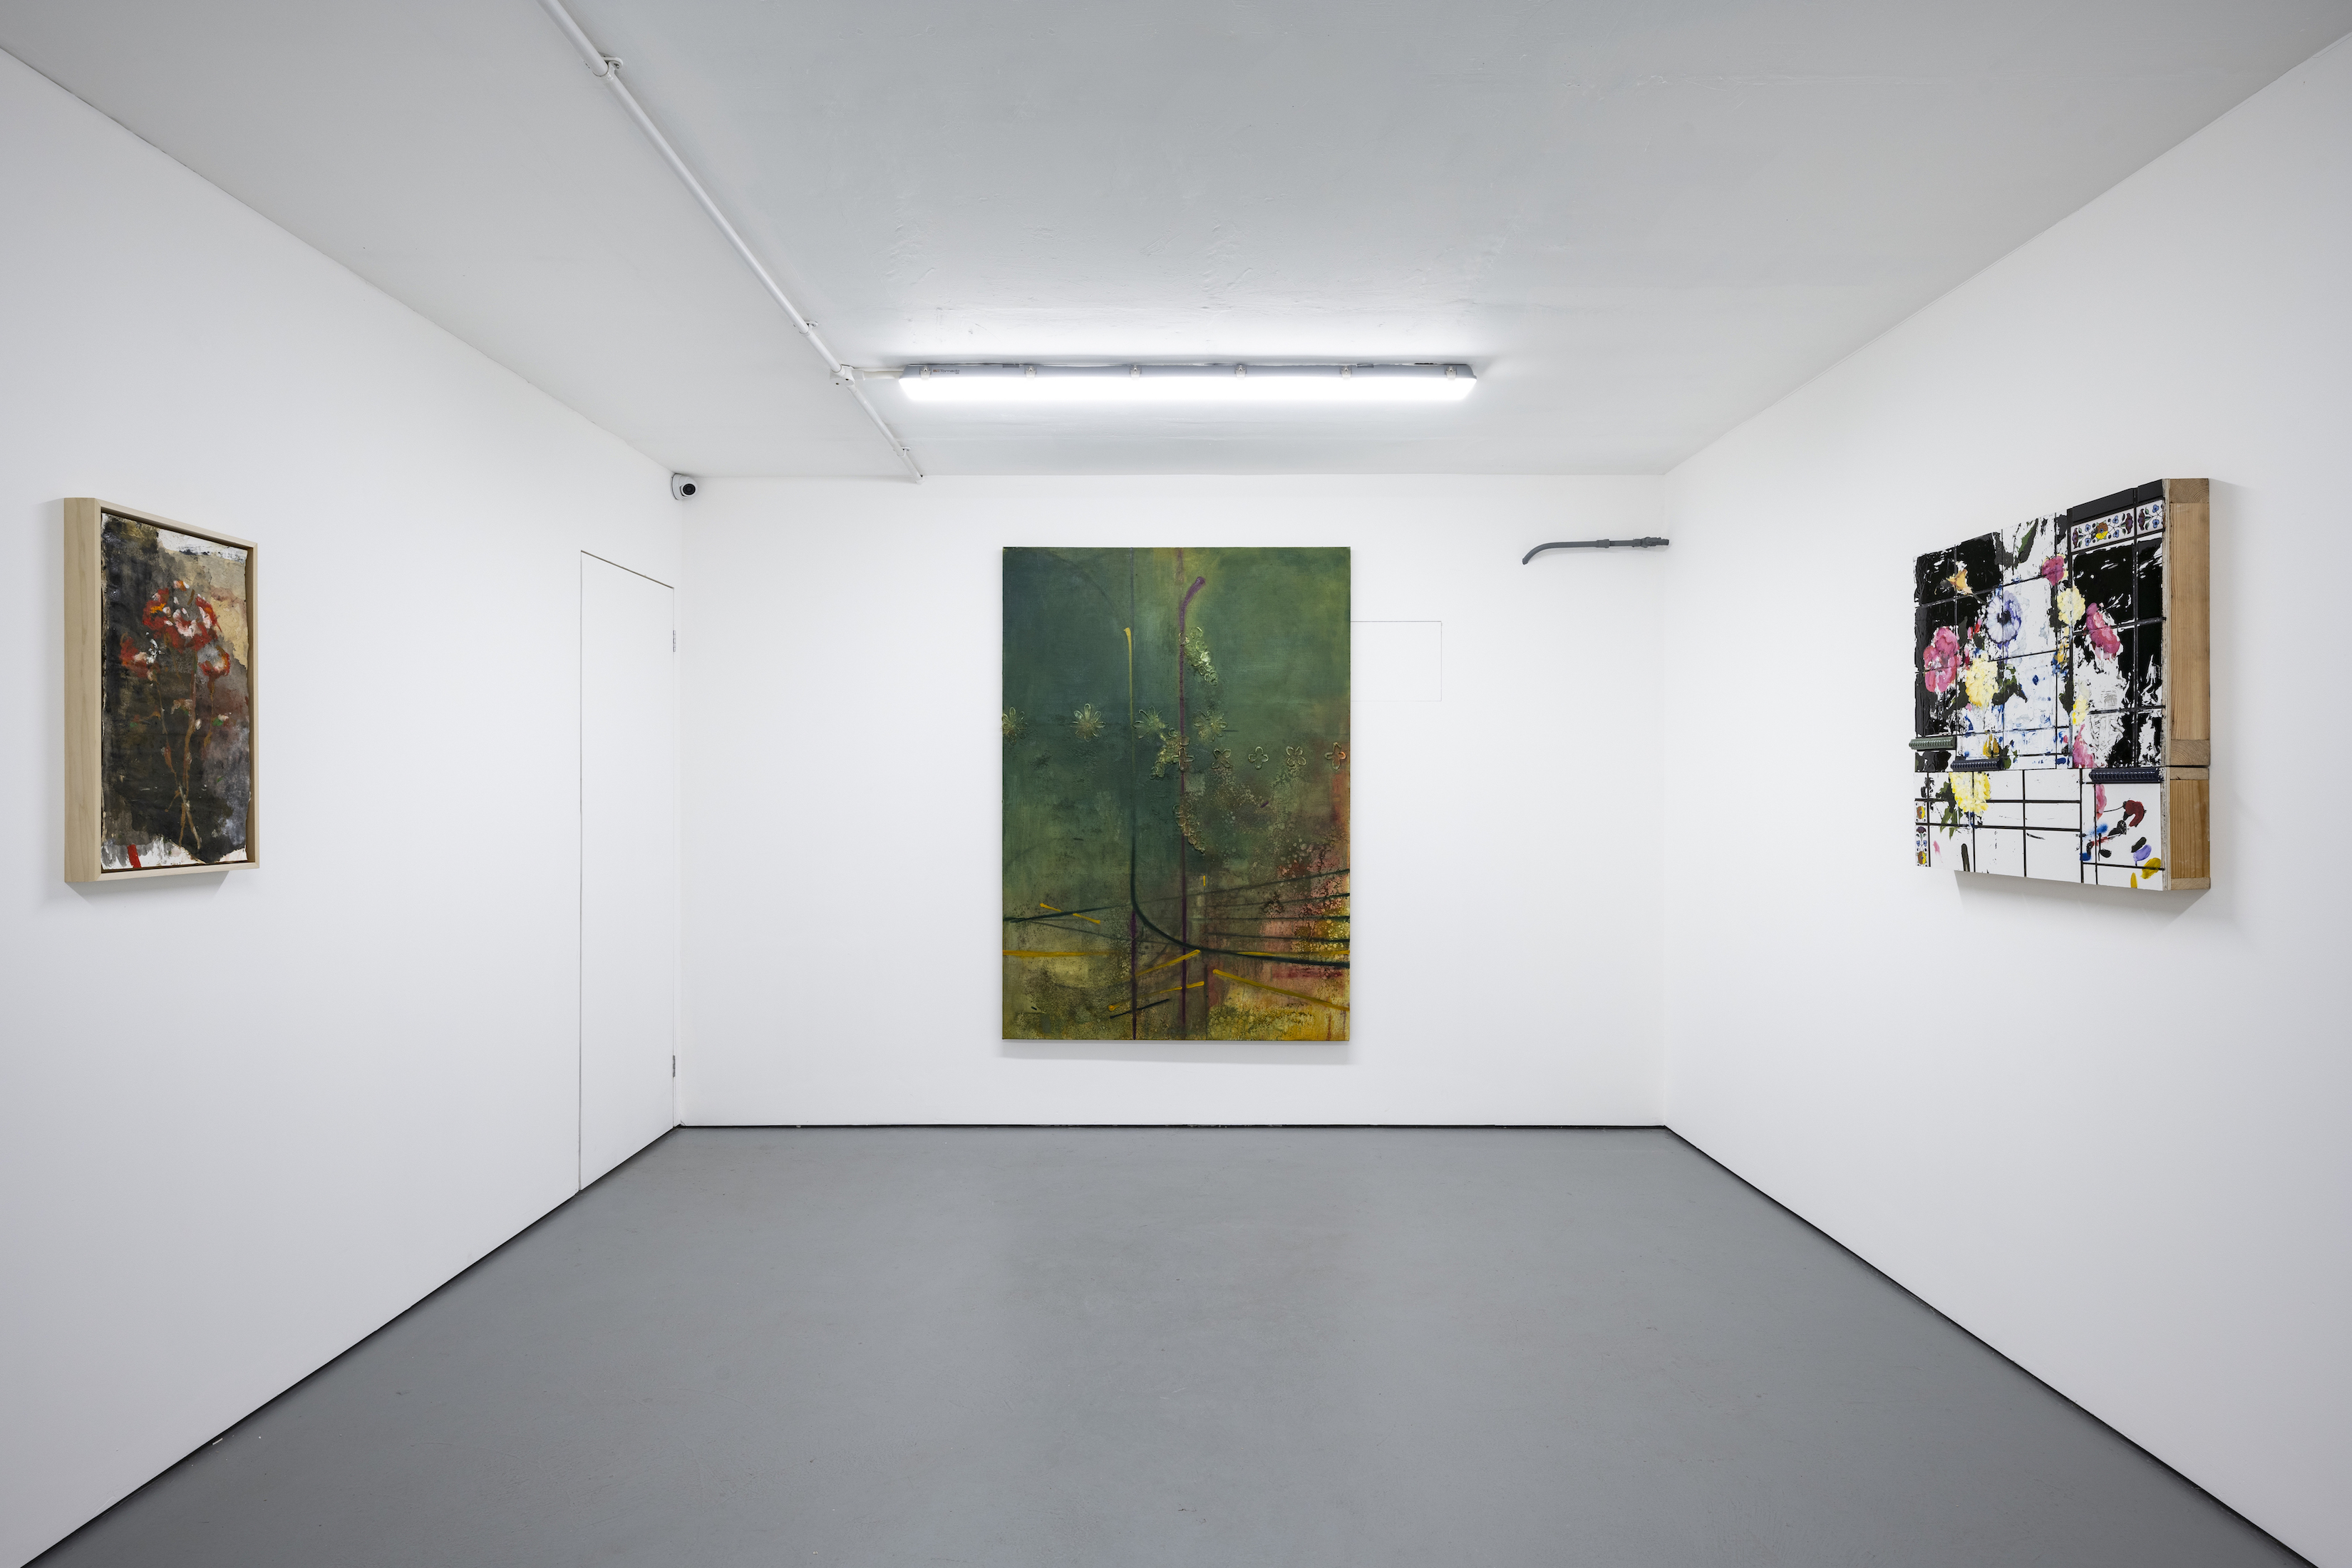 Installation view, 'Thermopolium' by Luca Longhi. Photo credit: Damian Griffiths